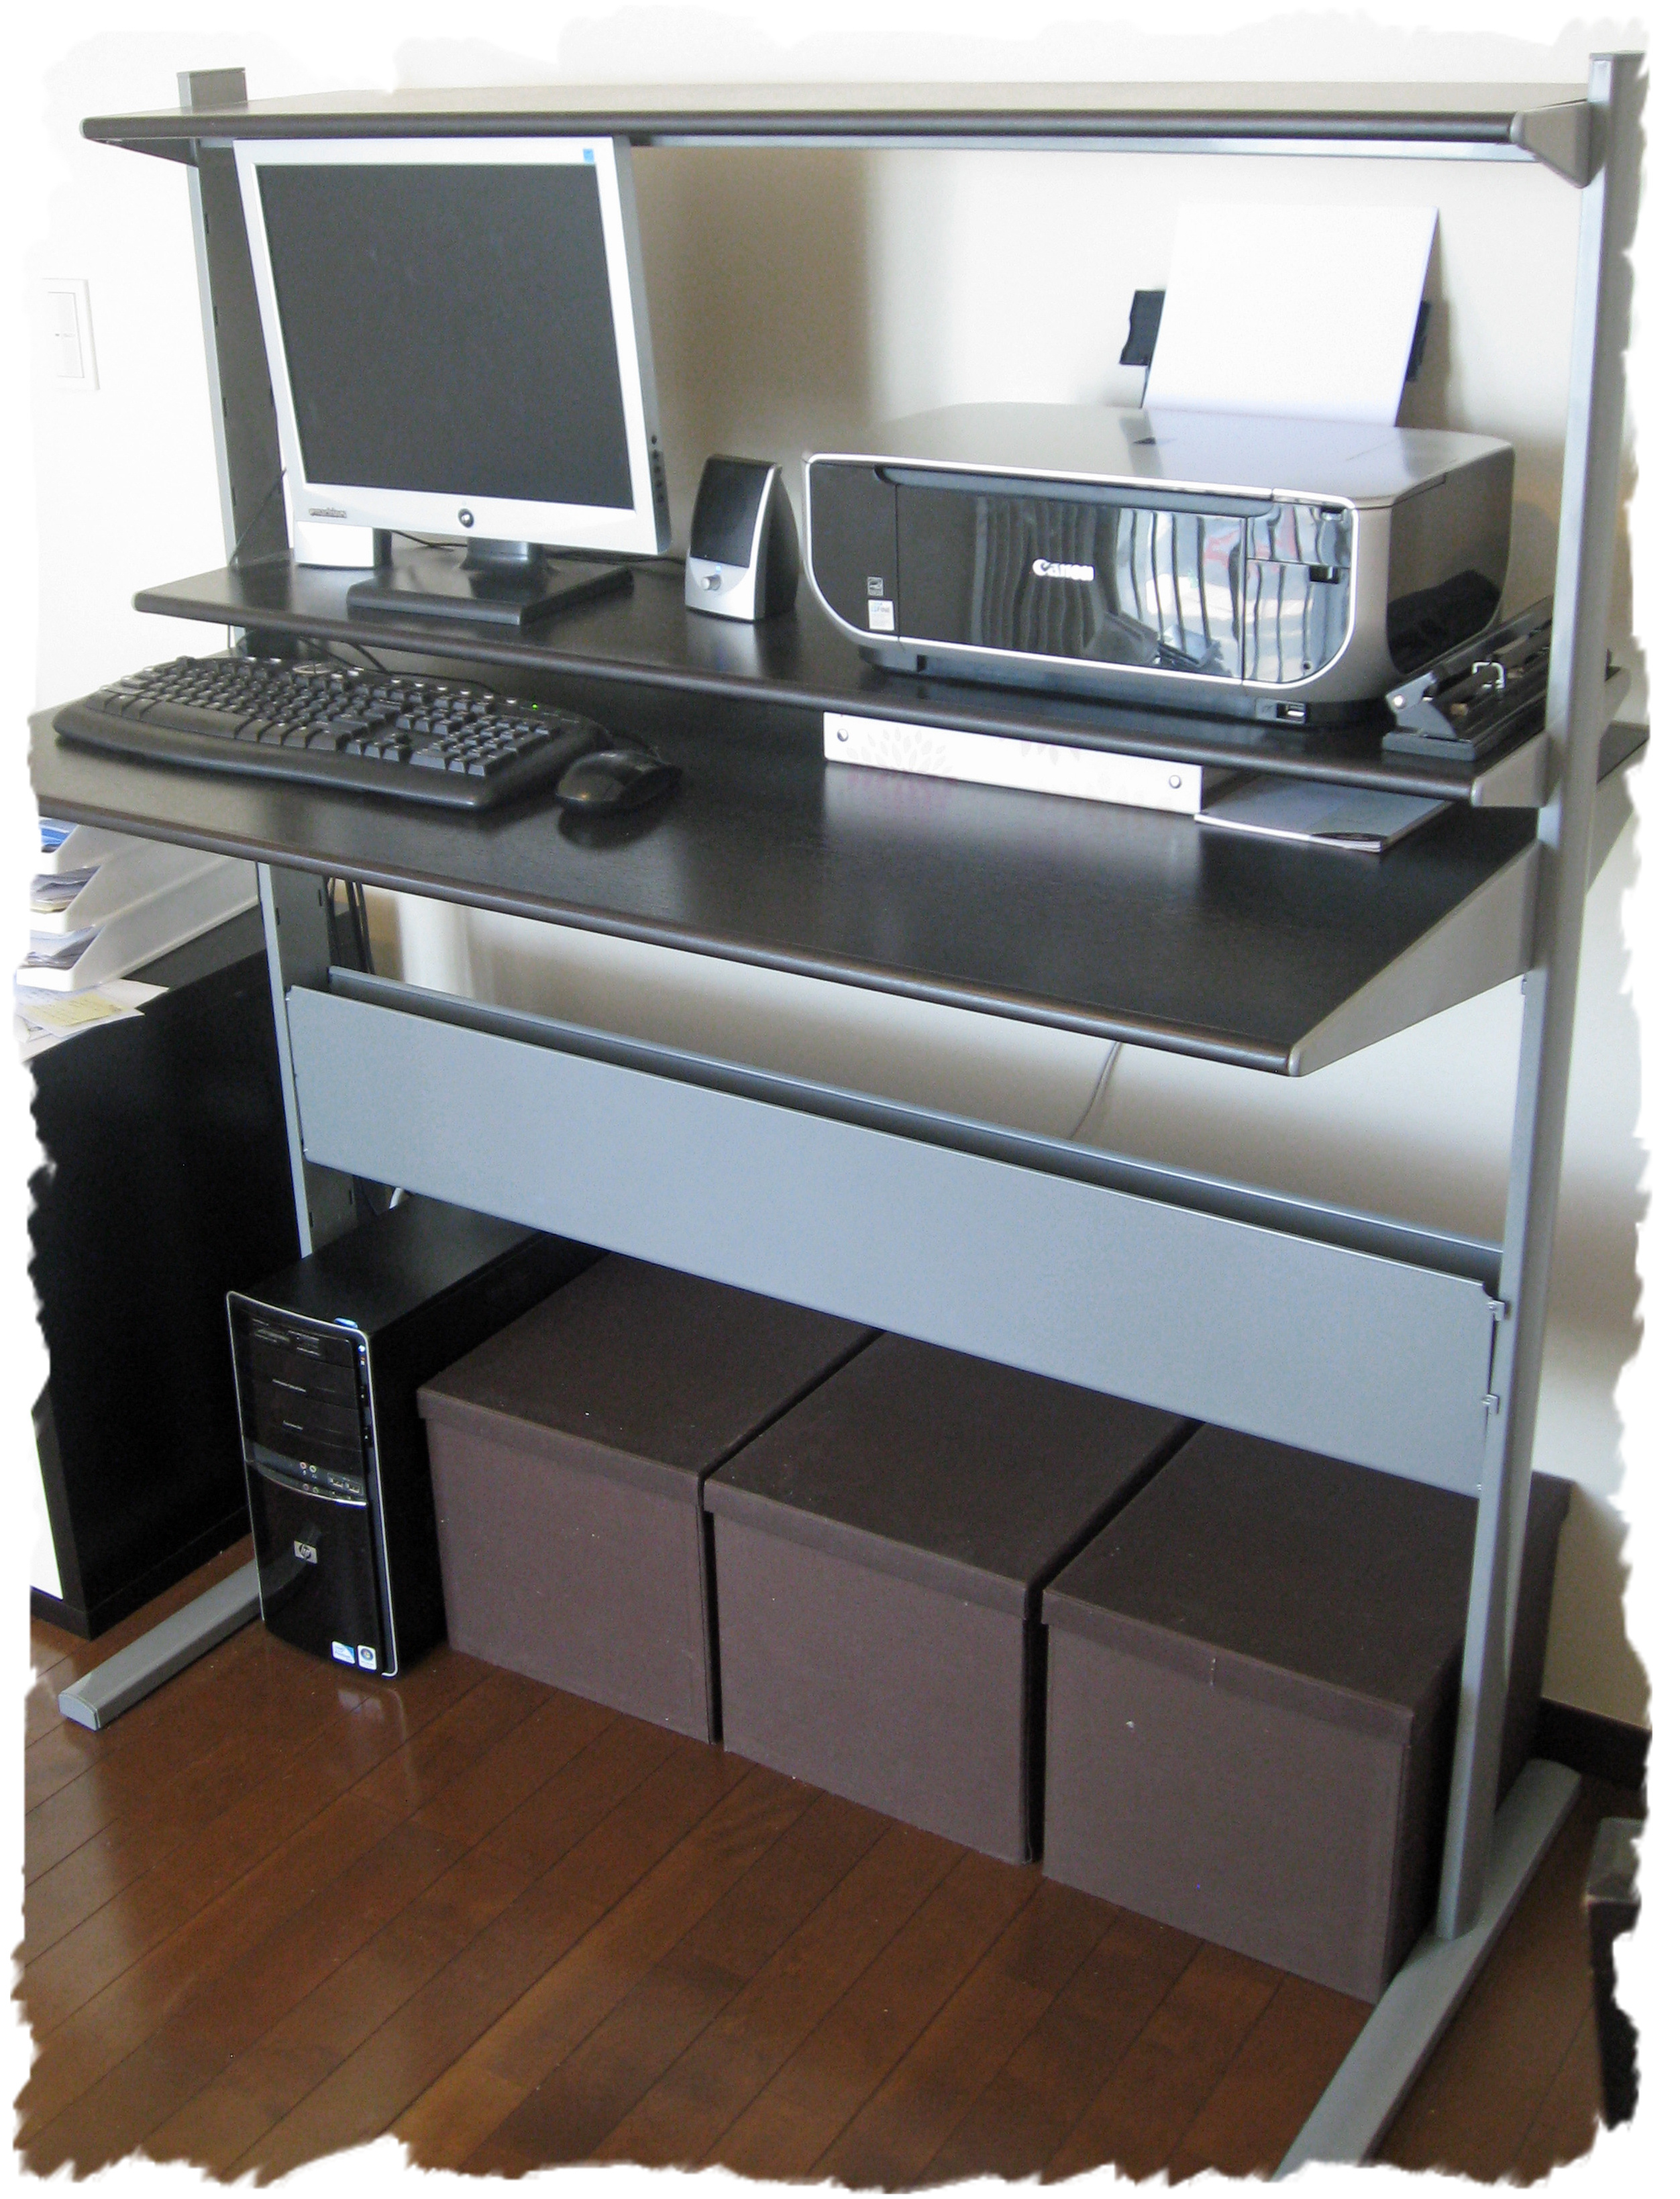 Workstation Furniture Sayonara Roppongi Hills Finding A Good Home For Our Well